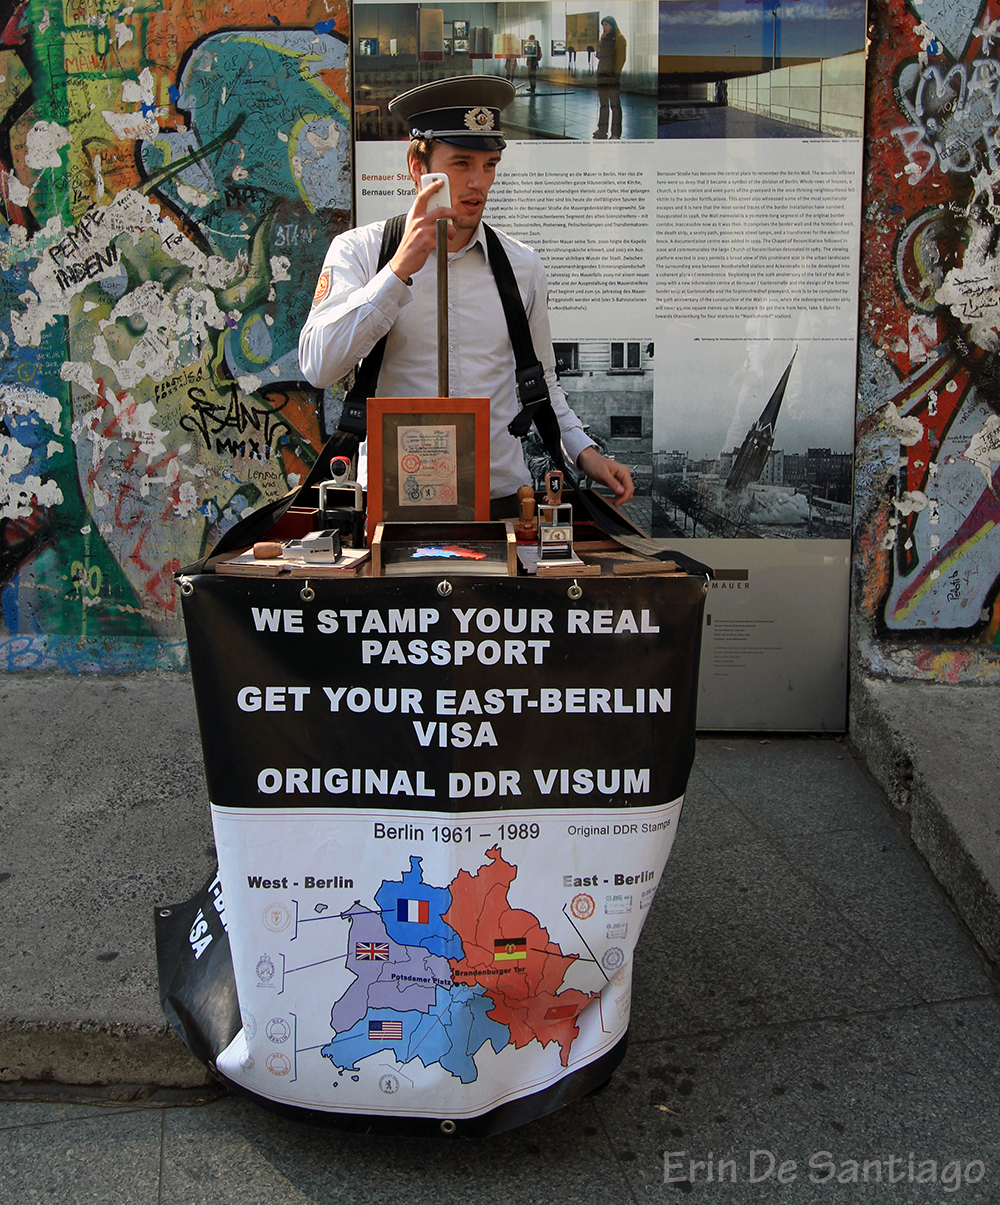 Carrying your Passport? There is a guy who will stamp it with an East Berlin visa.